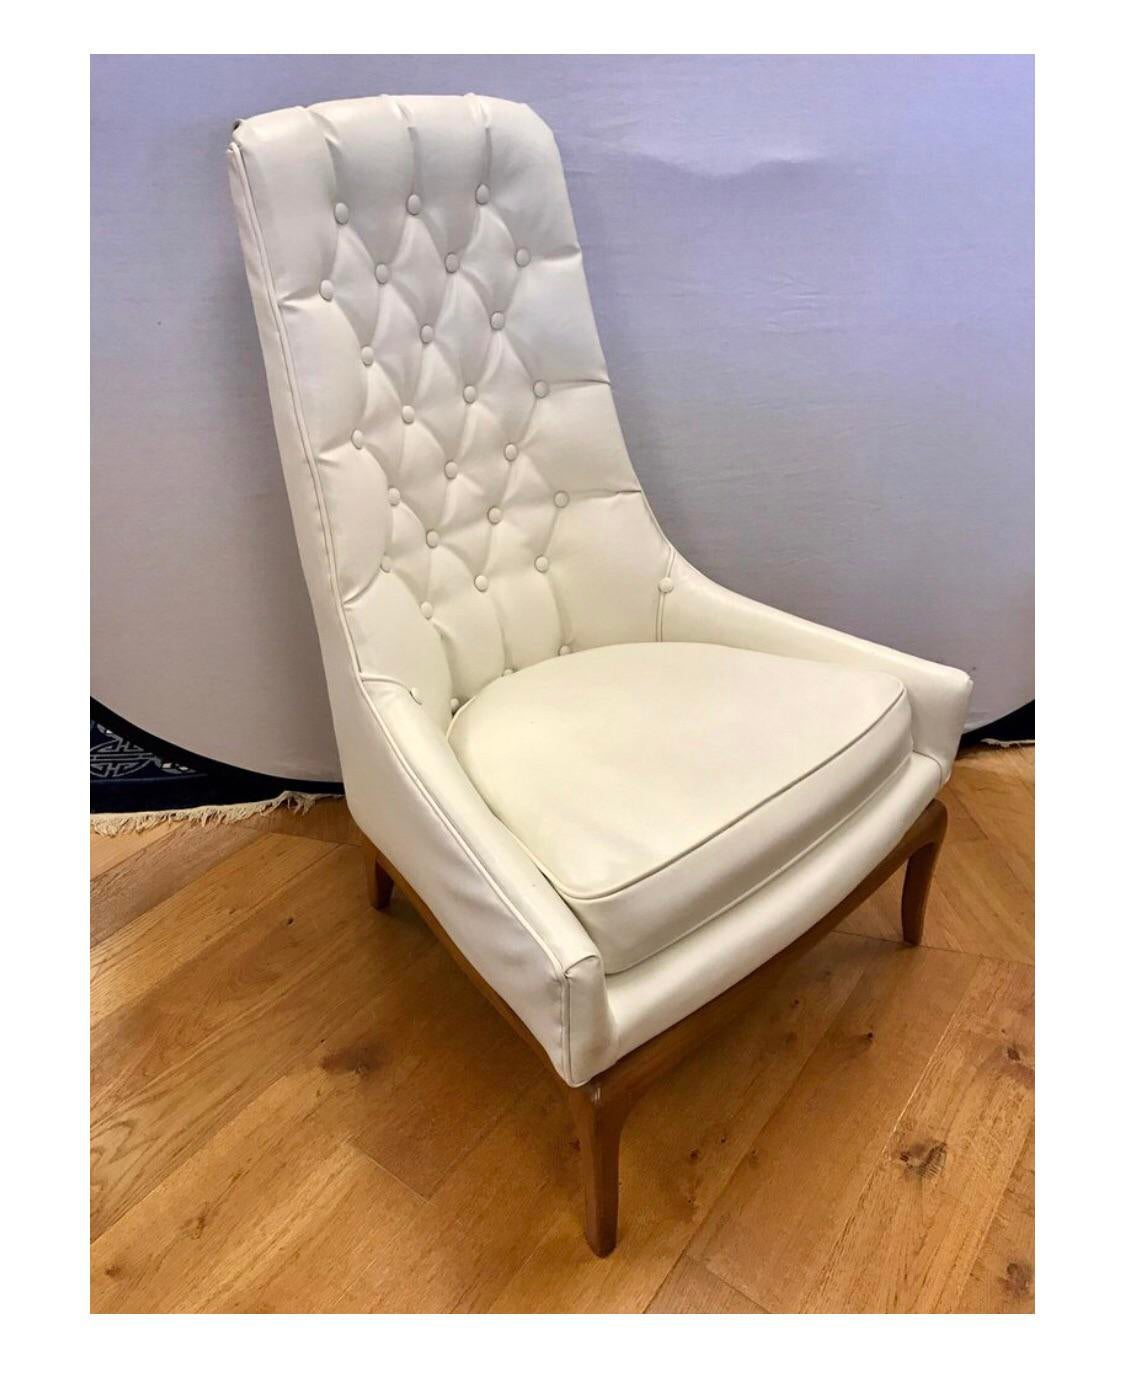 white tufted chairs beach chair cooler backpack superb mid century widdicomb robsjohn gibbings quilted pair of button done in a faux leather that looks like the